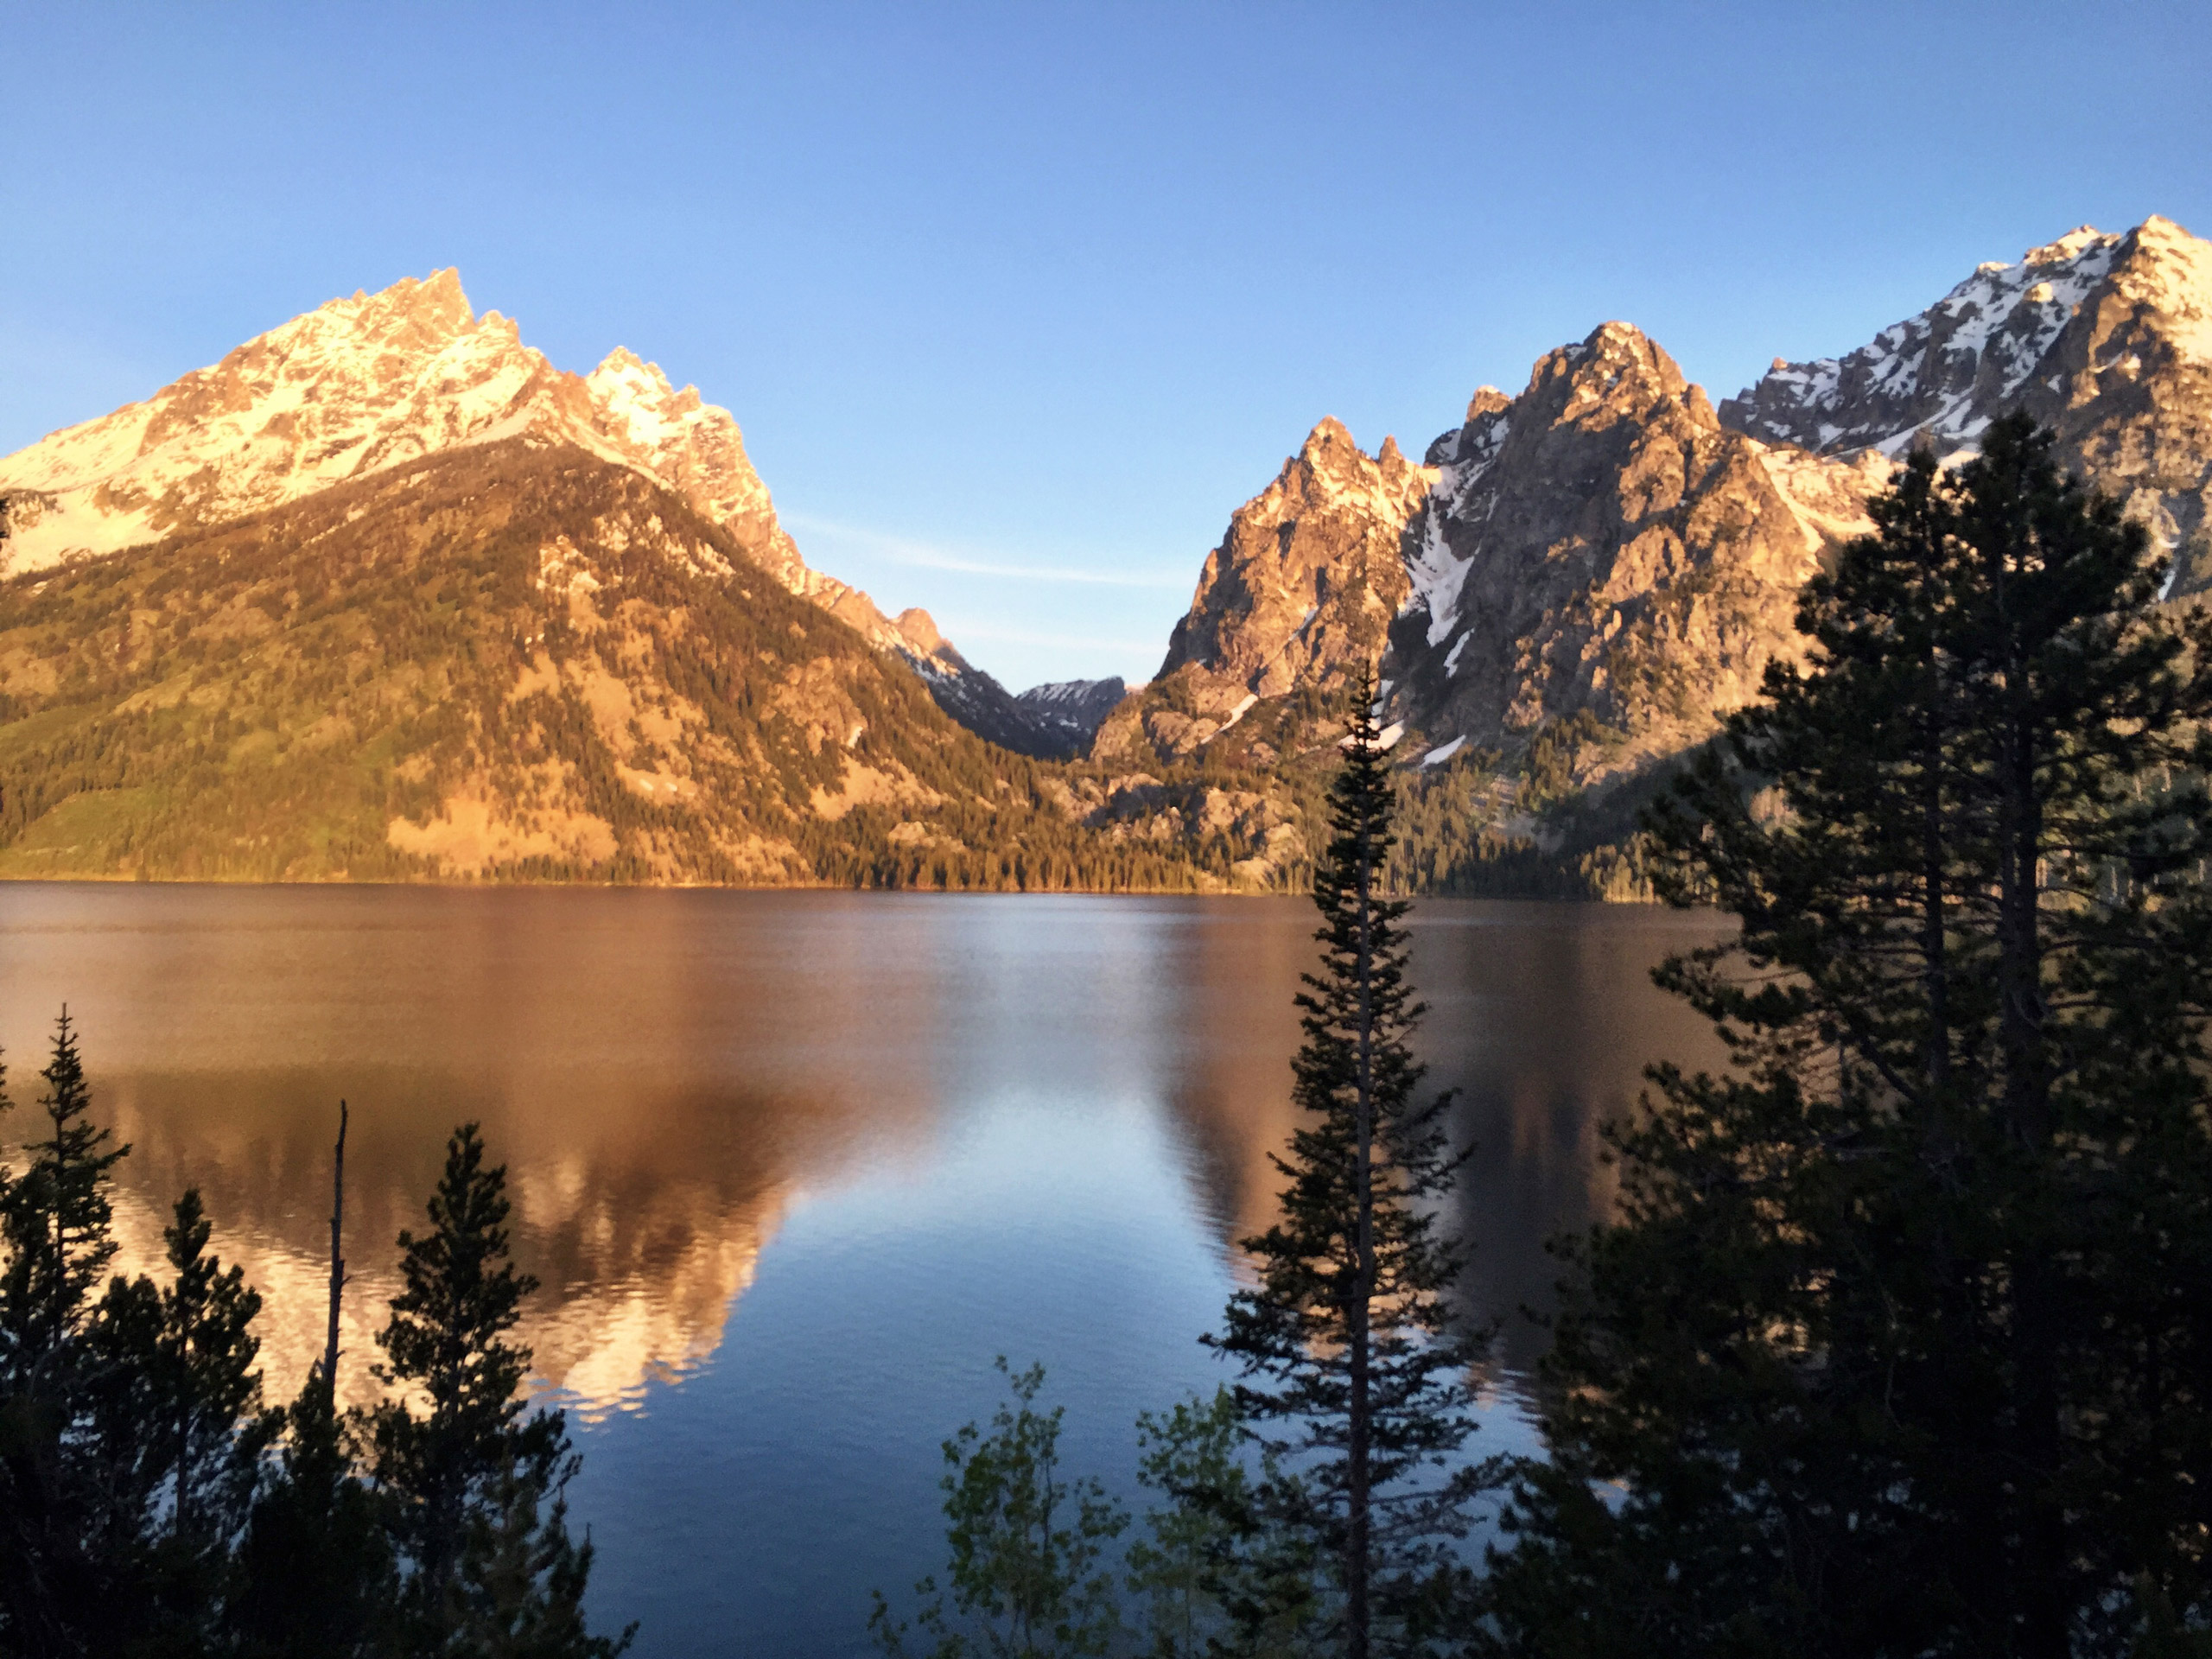 Alpenglow shining on the Grand Tetons in Grand Teton National Park, Wyoming, on June 4, 2015.